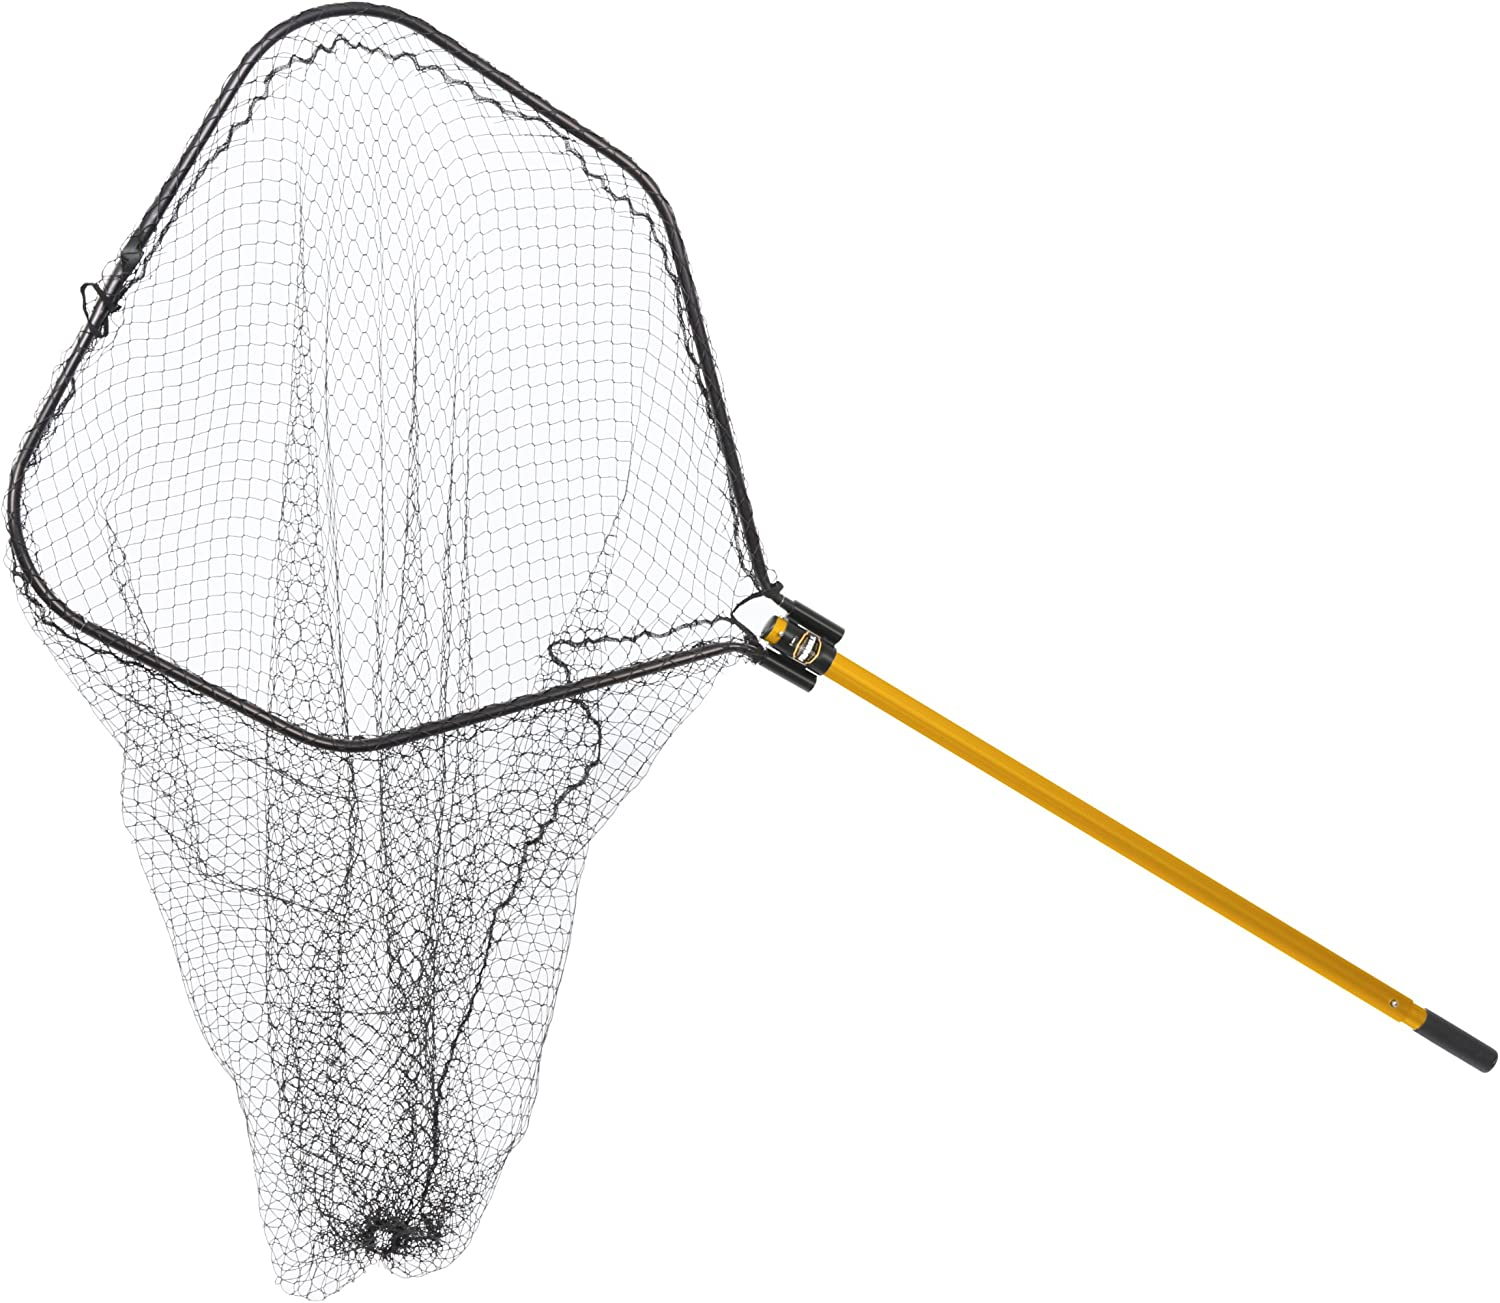 Frabill 8510 Power Stow Net with 36-Inch Telescoping Handle, 24 x 28-Inch